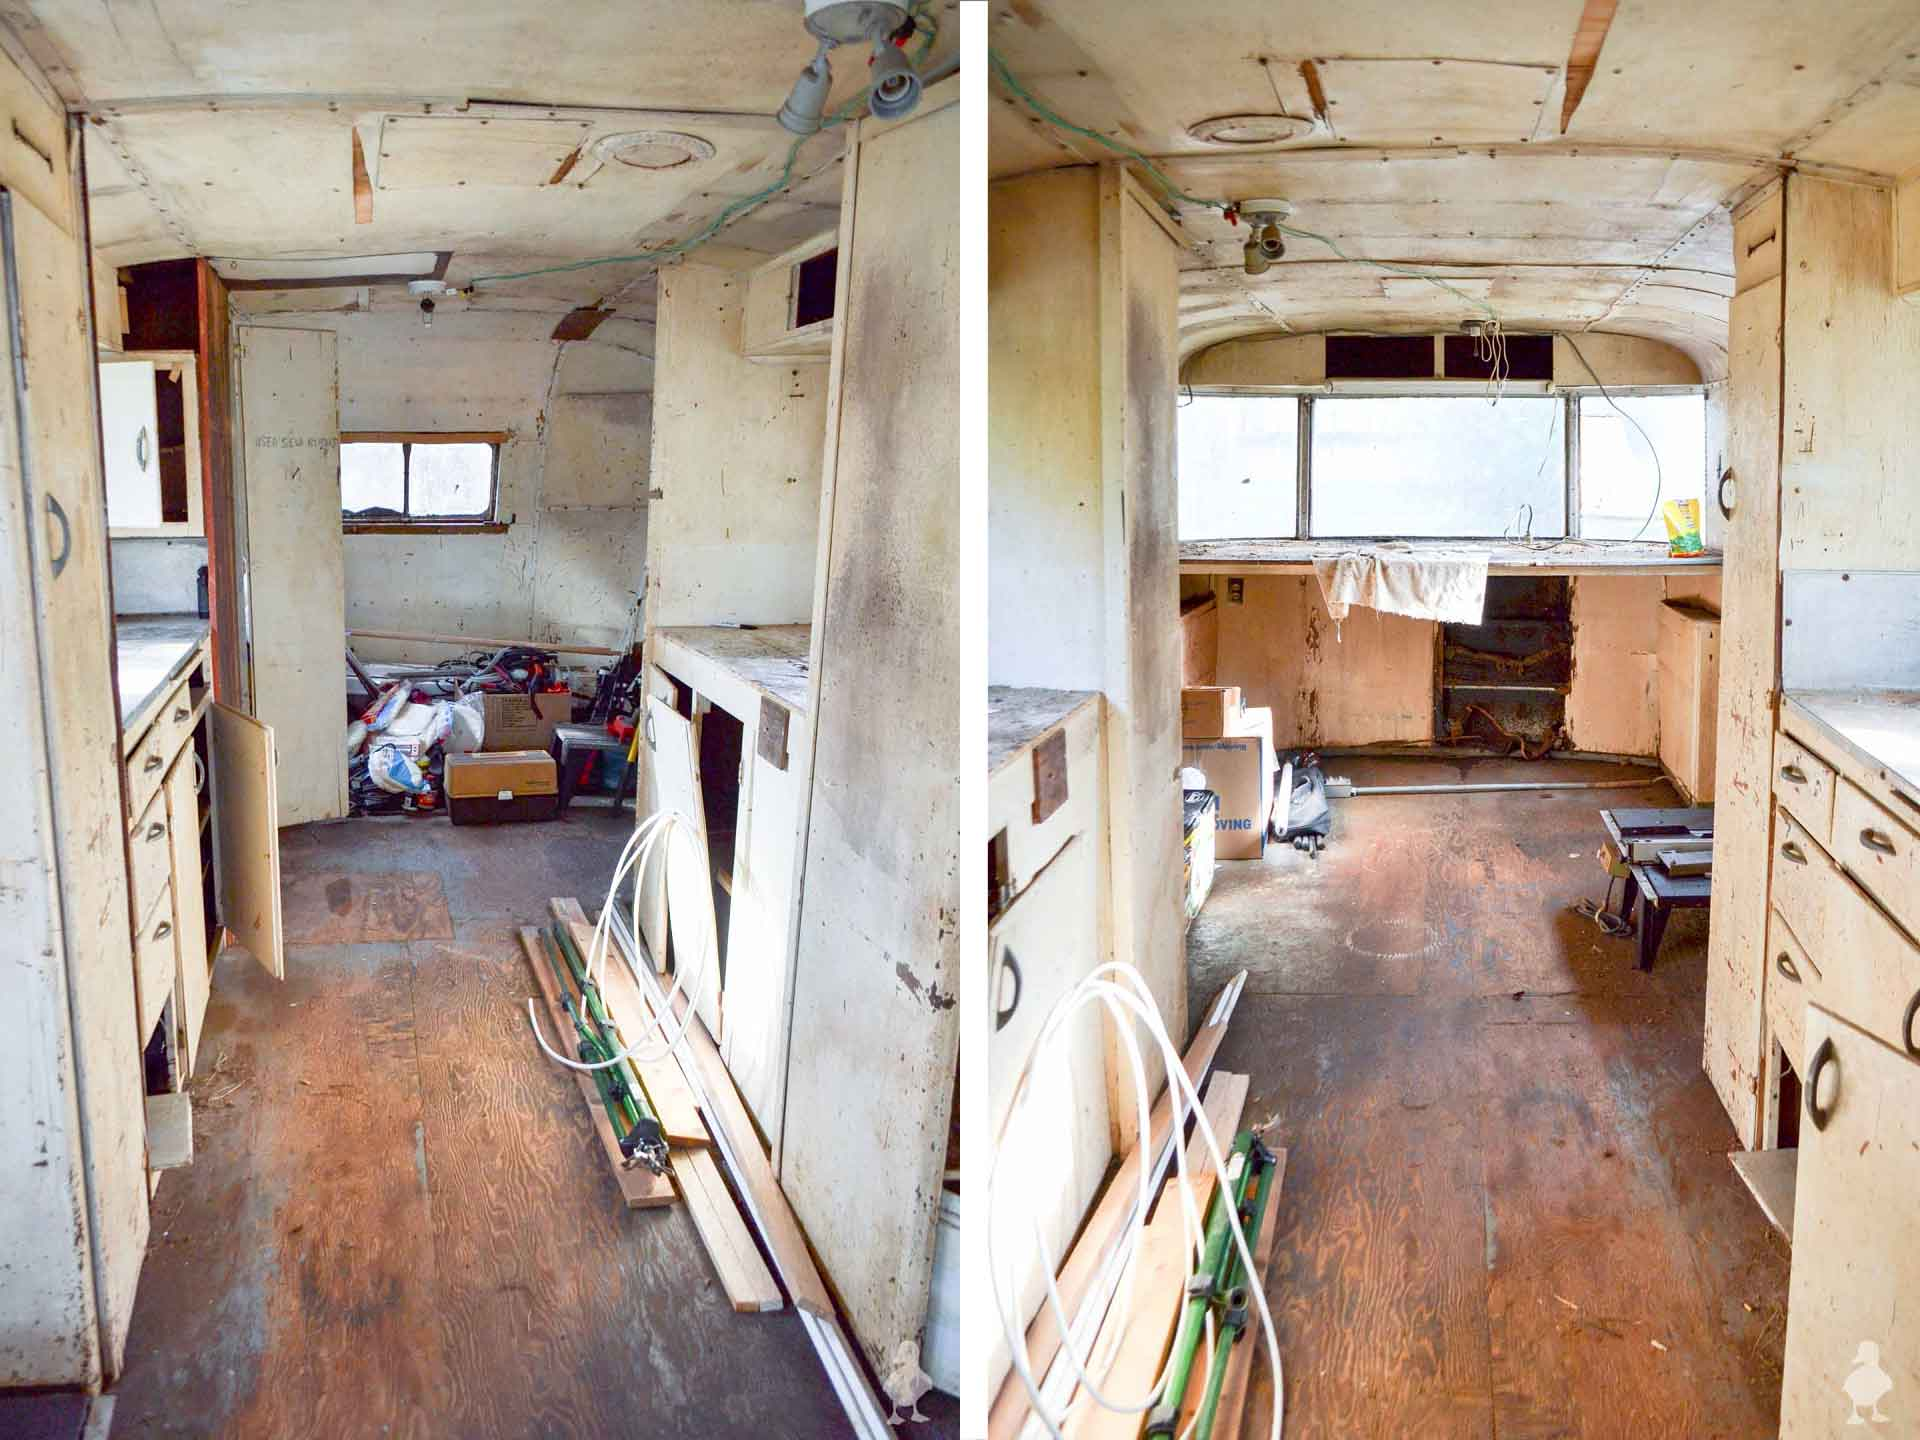 Ruby's-Revival-interior-side-by-side-view-of-both-ends-of-vintage-camper